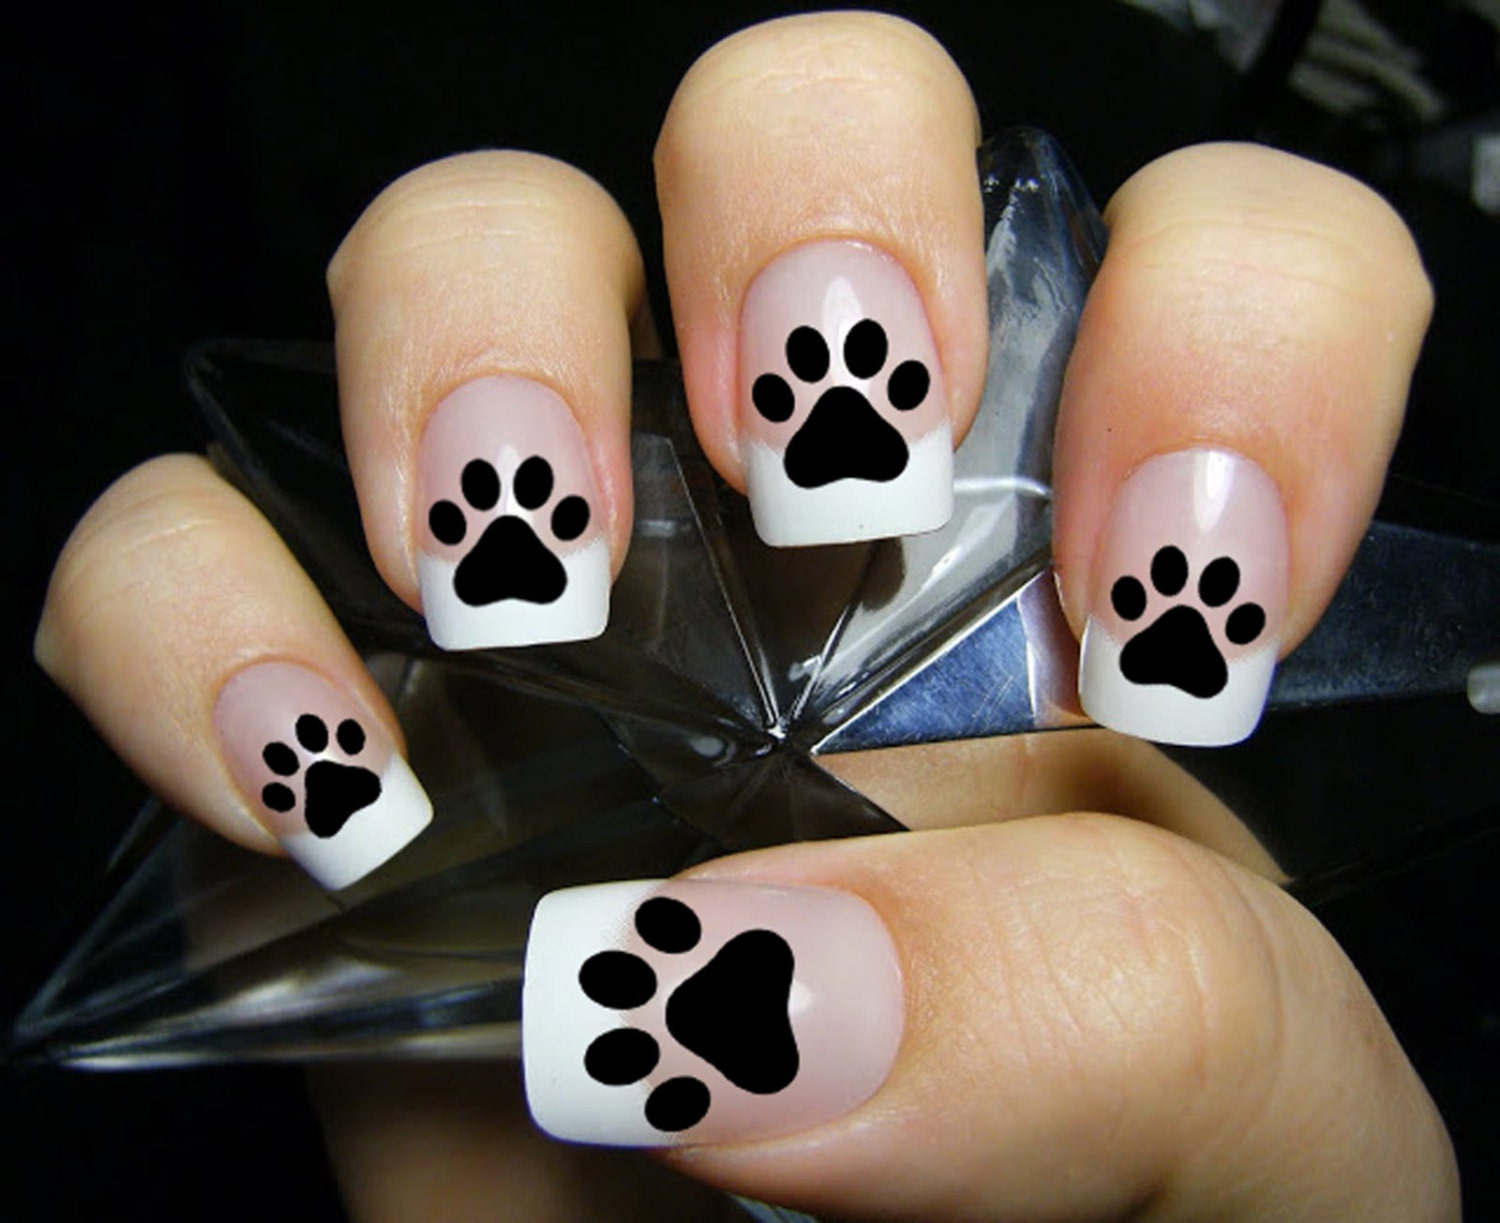 Details. 48 PAWS PRINTS Nail Art ... - 48 PAW PRINTS Nail Decals PAW Kitten Puppy Dog Paws Black